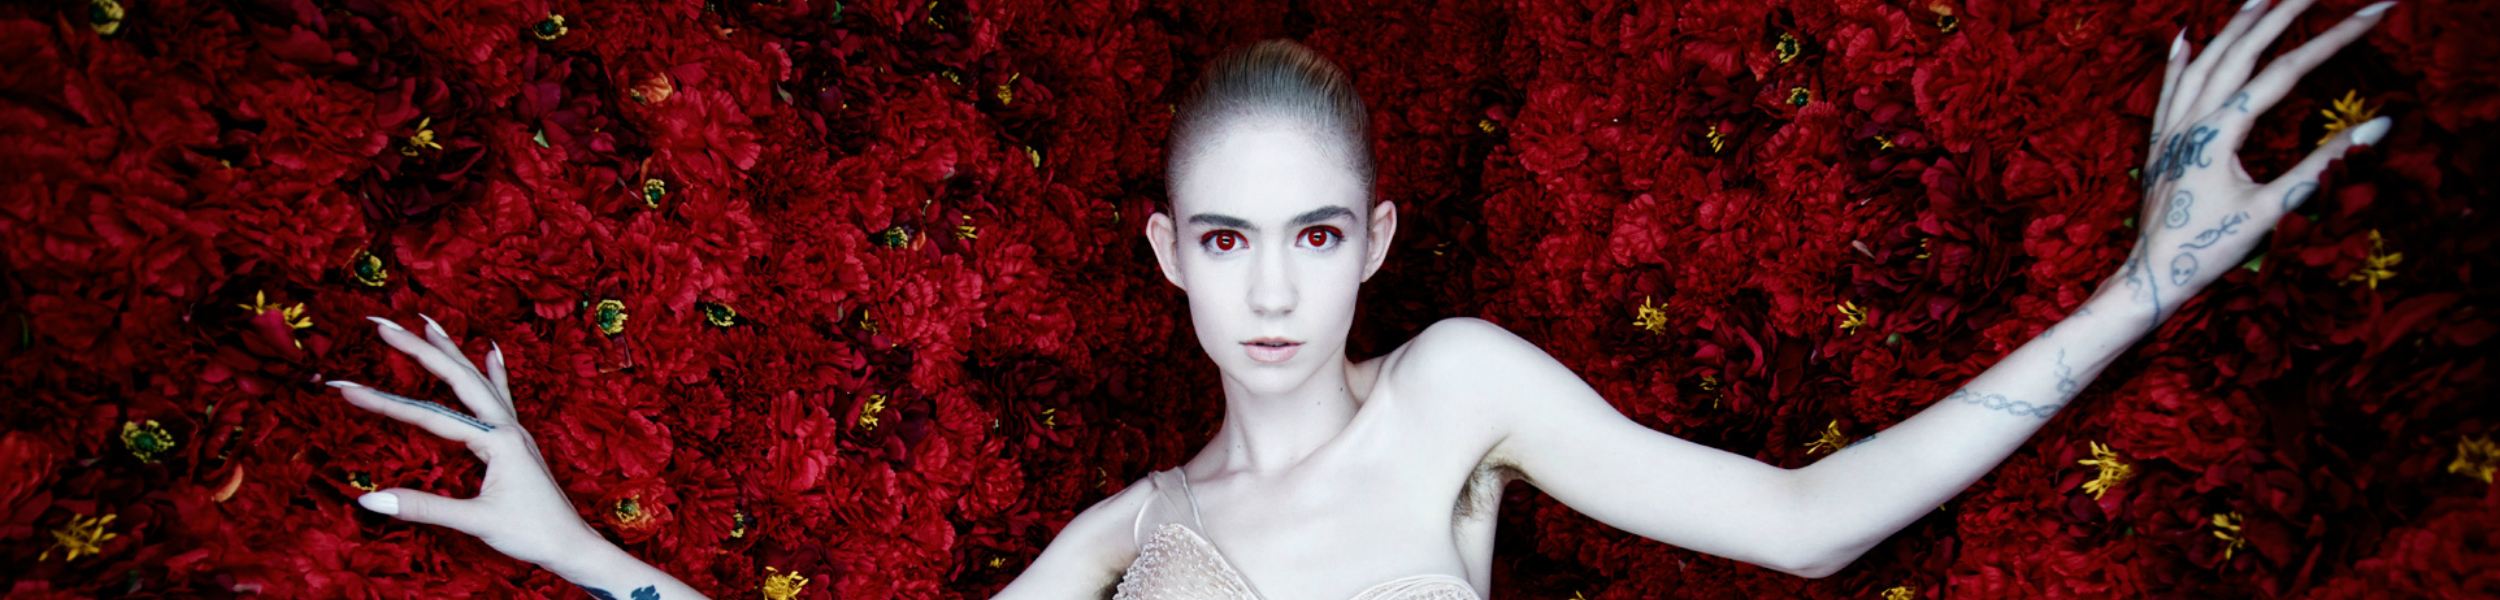 Grimes - Visions by Grimes Released Outside of North America Today